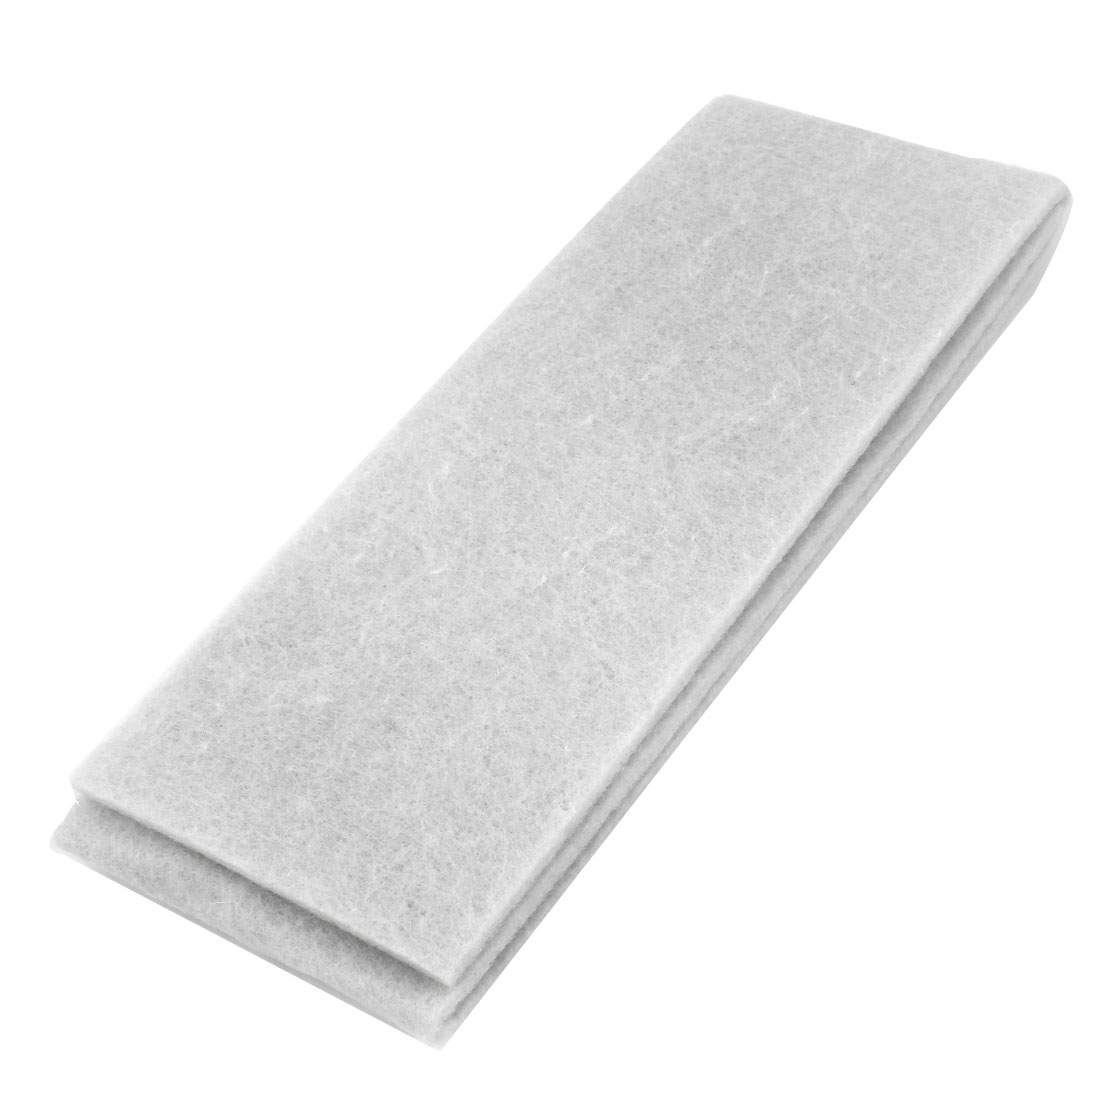 Aquarium White Rectangle 100cm x 17cm x 7cm Fresh Water Filter Sponge Pad